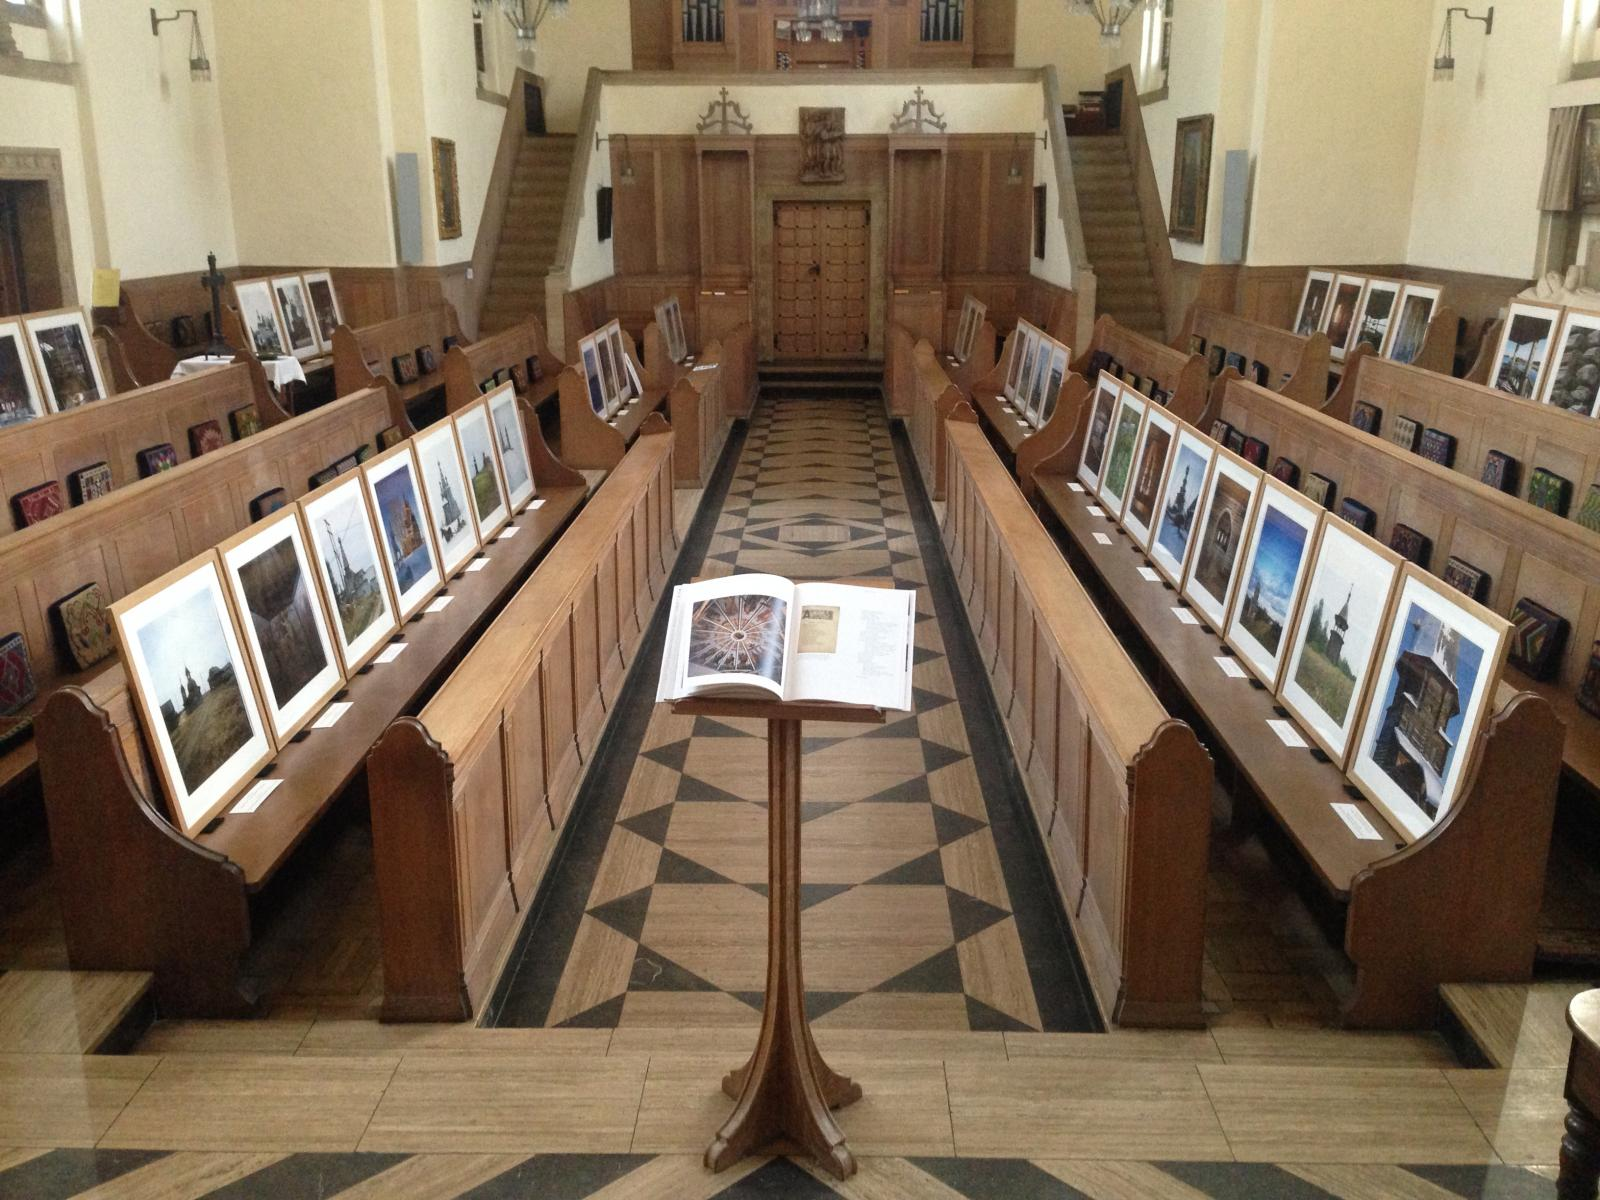 Art exhibition in the LMH chapel